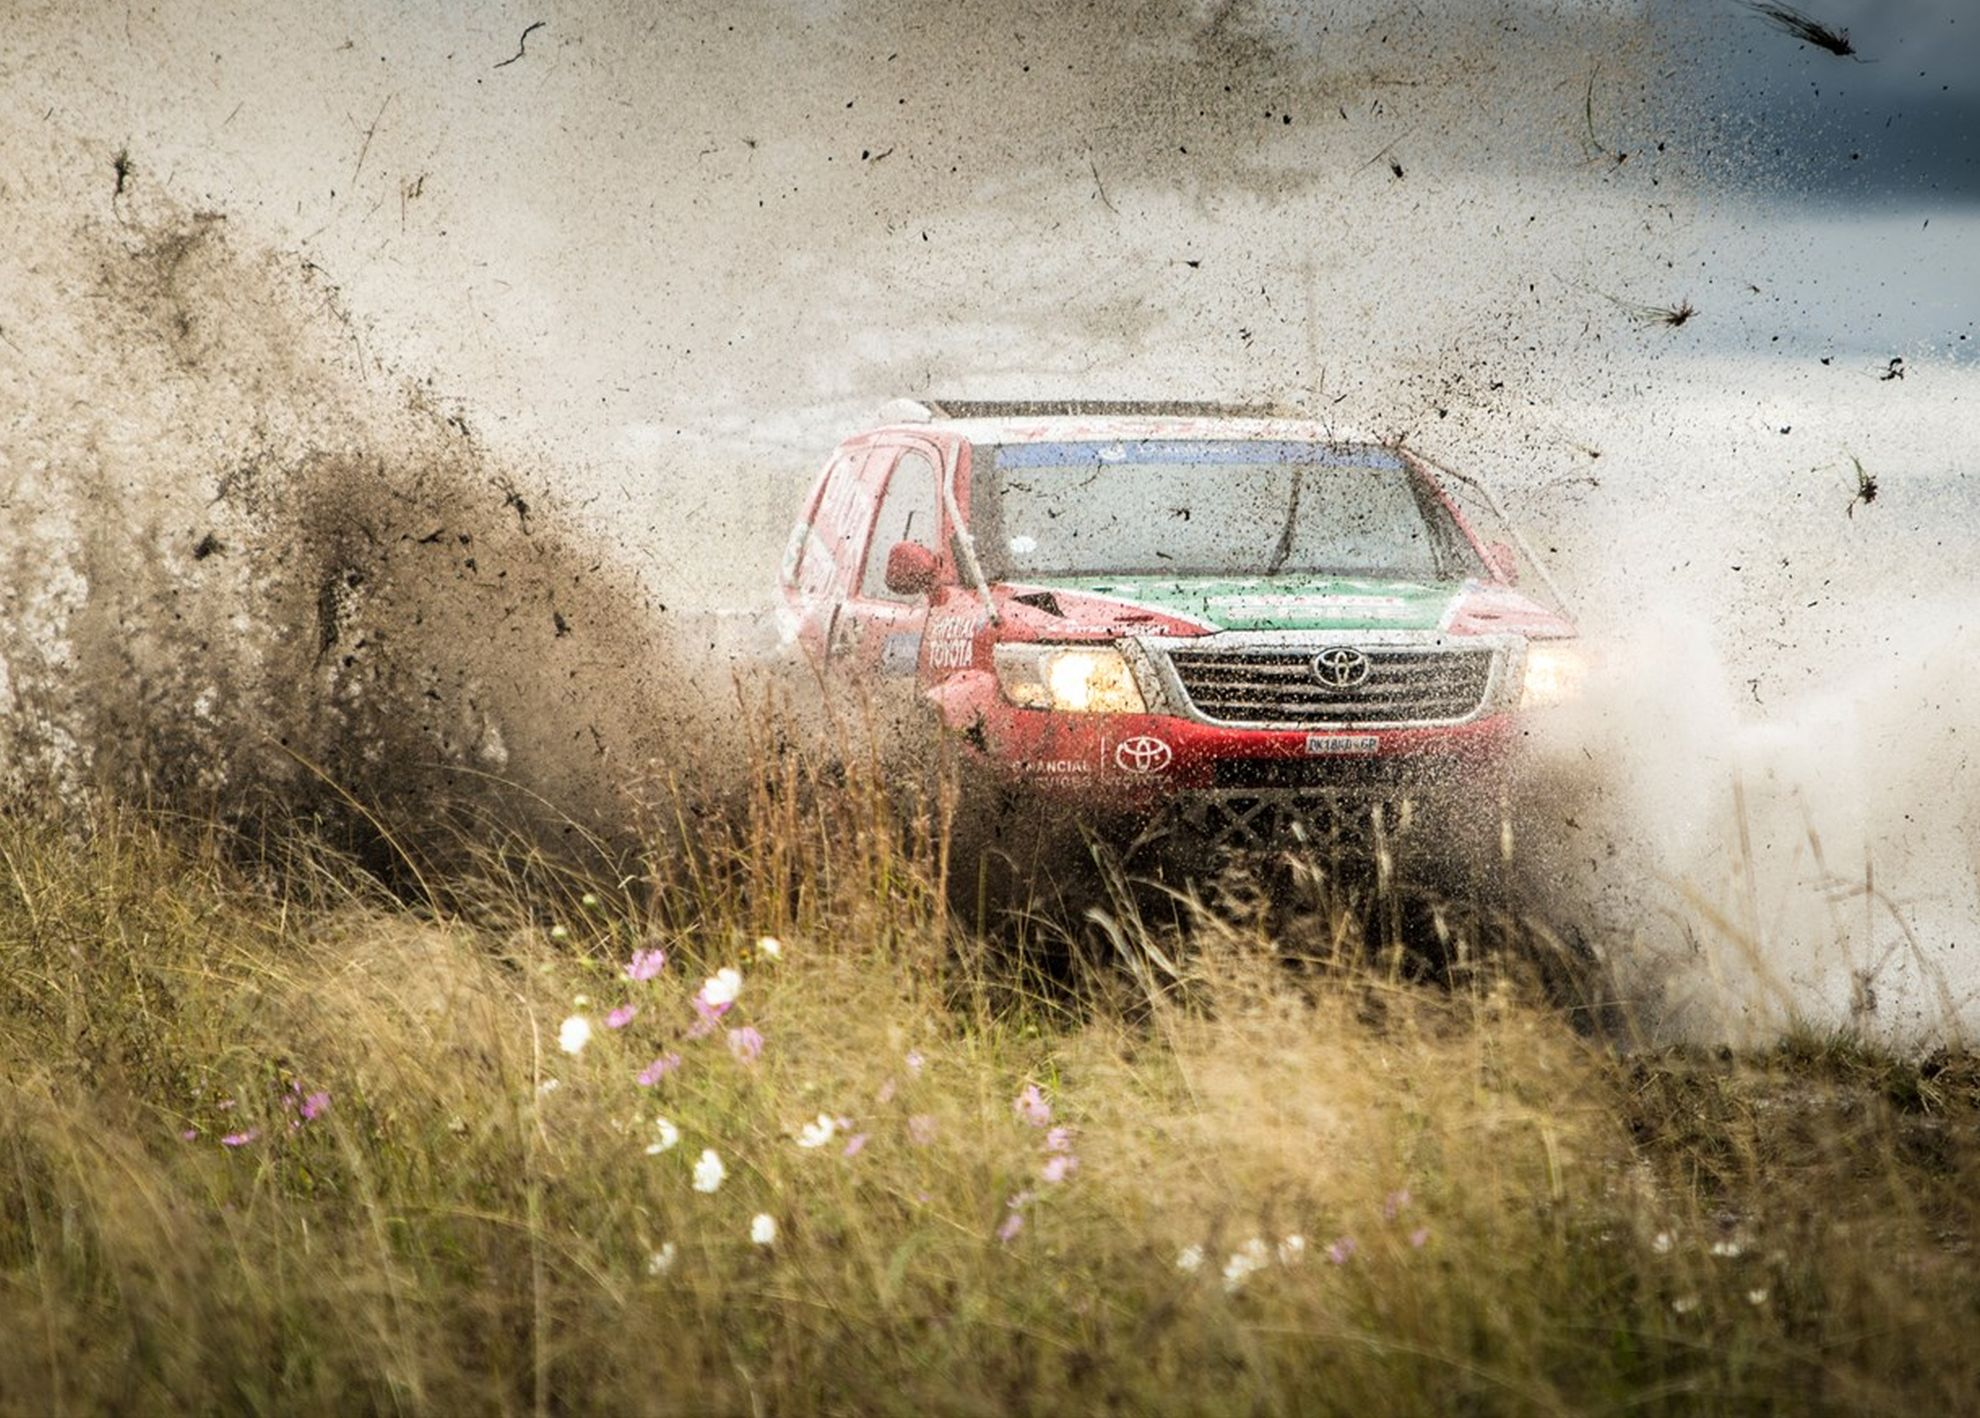 LEEROY POULTER WINS FIRST RACE IN TOYOTA HILUX IN TESTING RFS ENDURANCE RACE